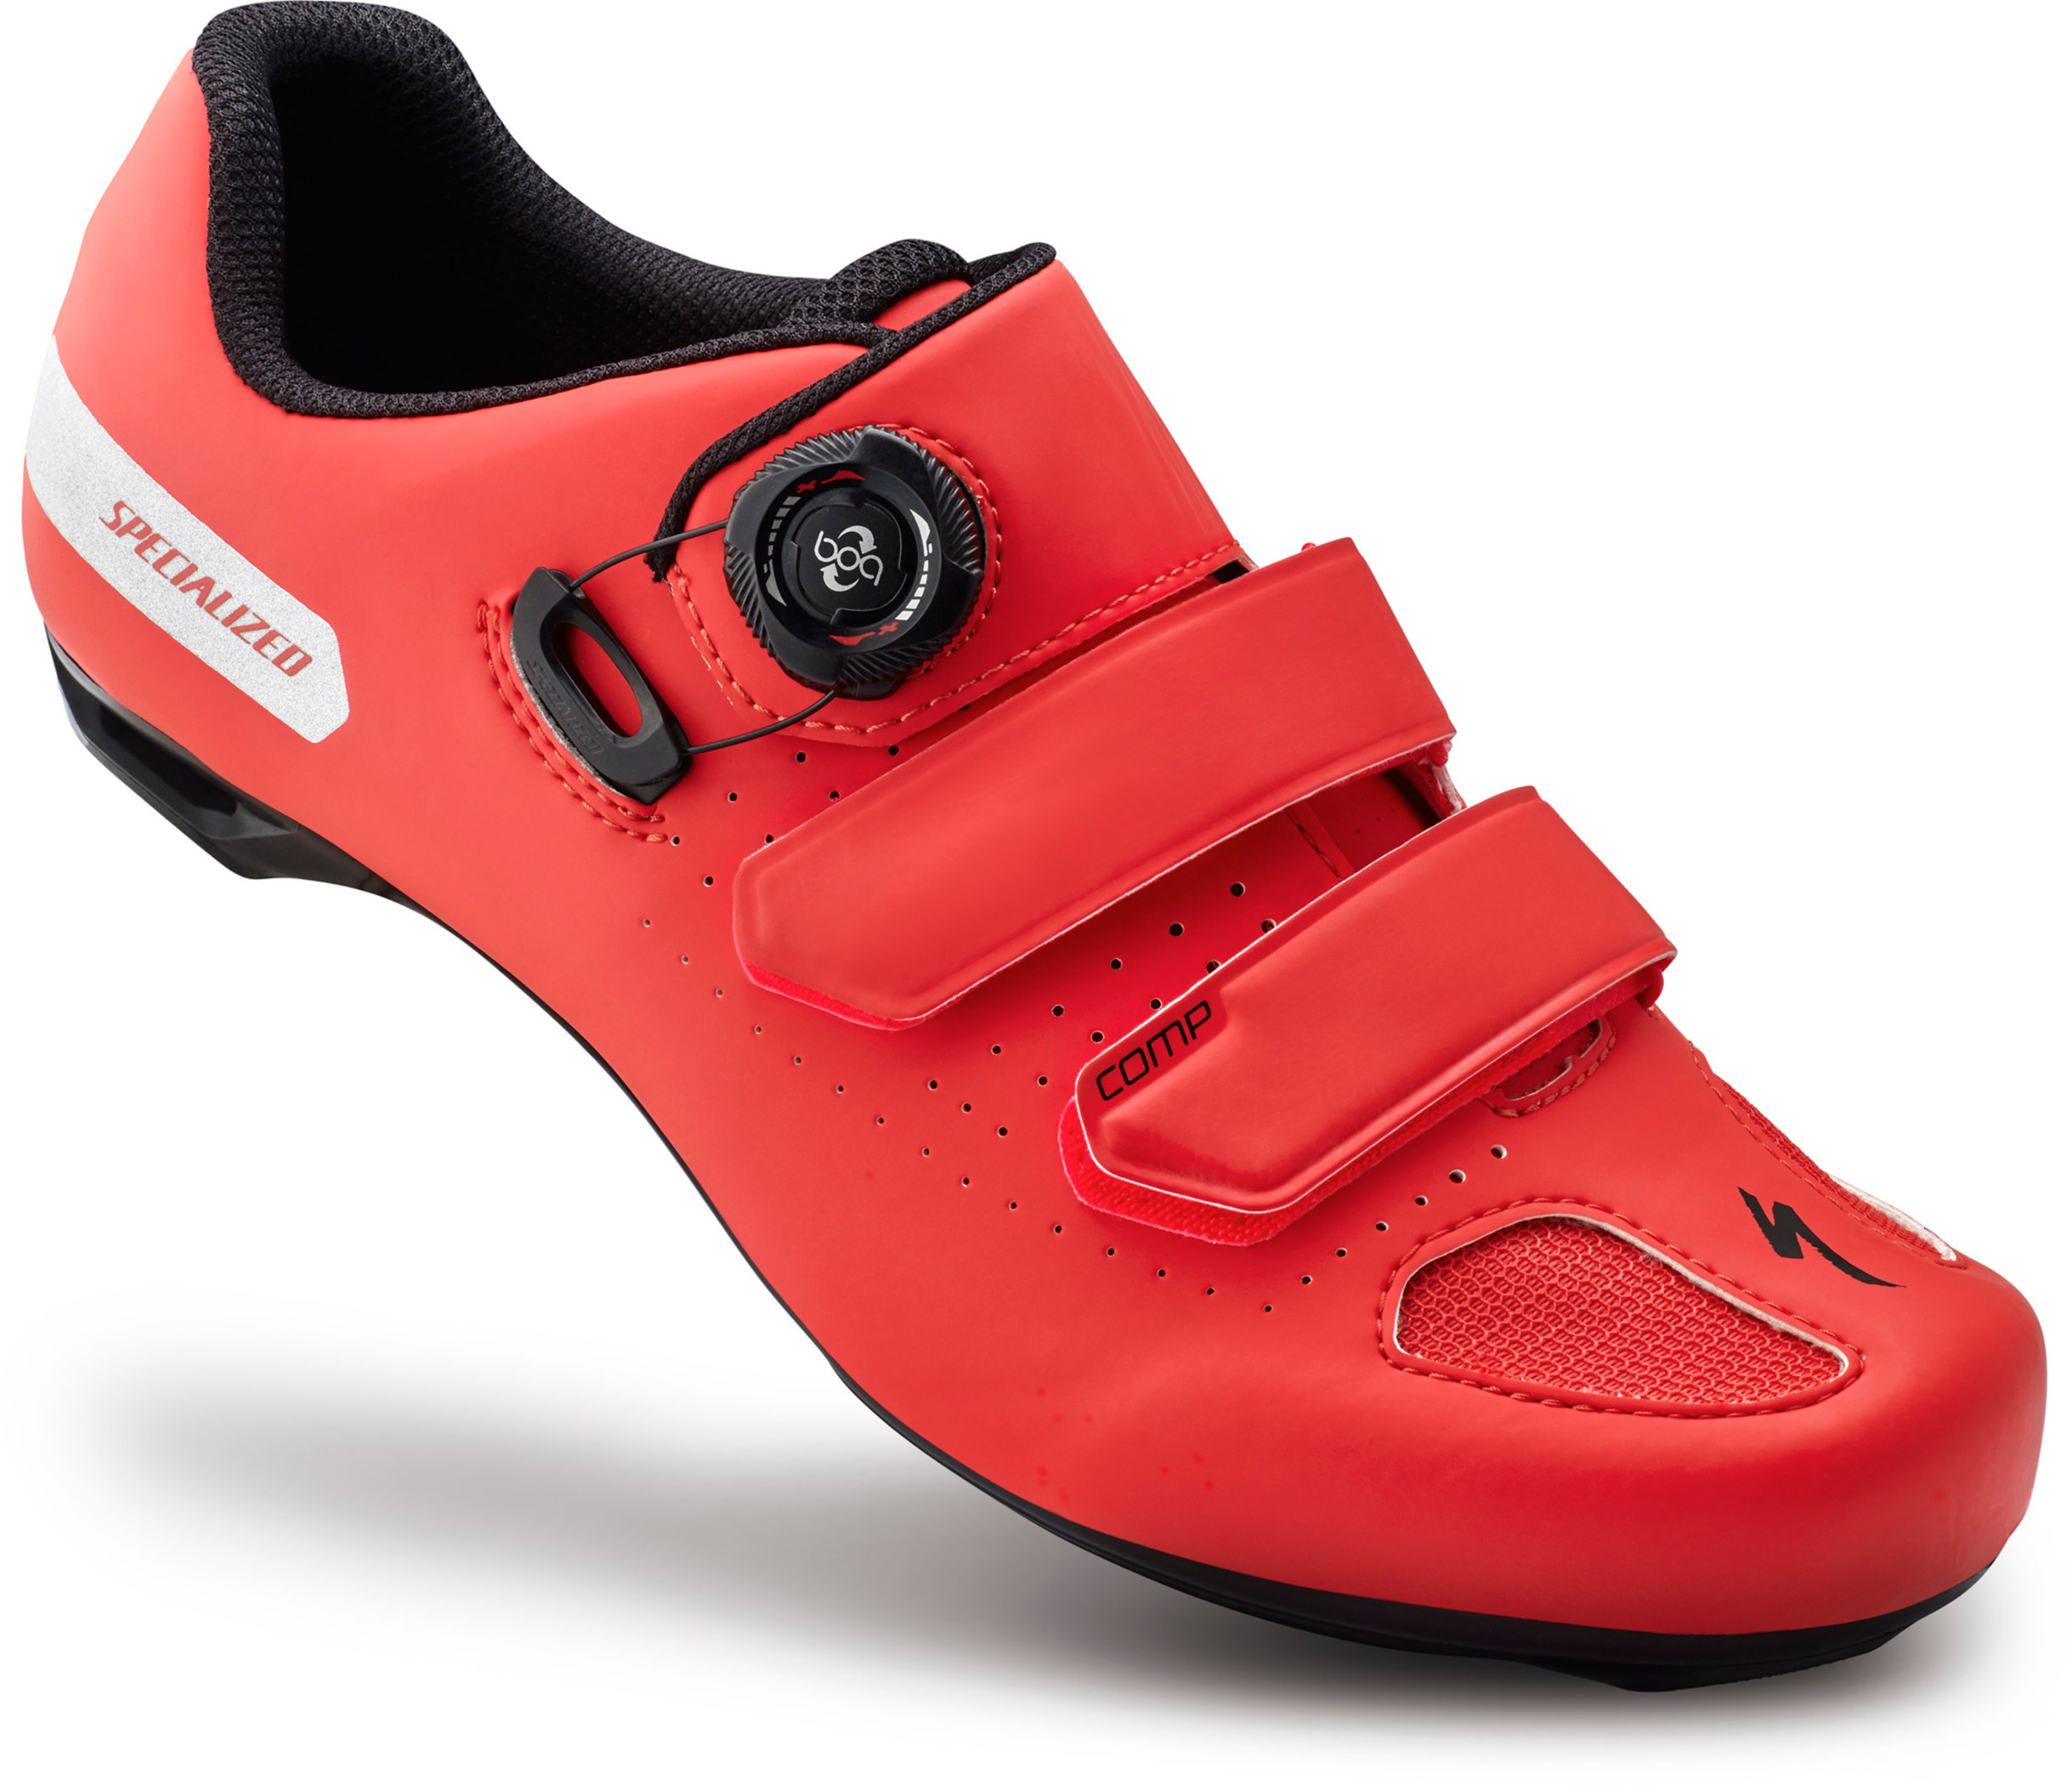 SPECIALIZED COMP RD SHOE RKTRED 47/13 - Bikedreams & Dustbikes